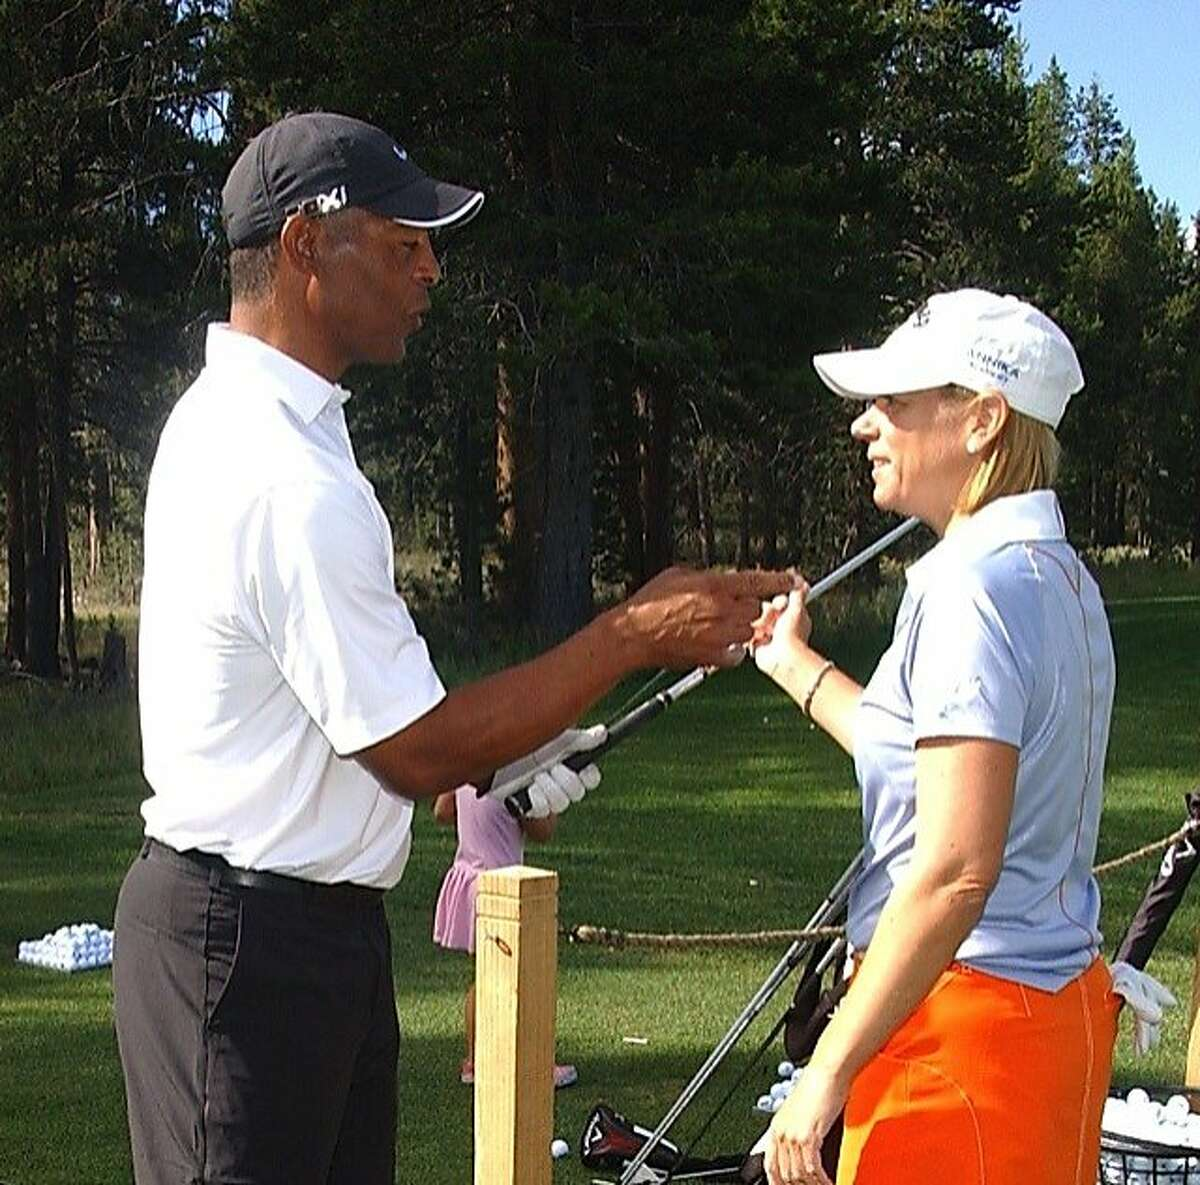 Retired LPGA great Annika Sorenstam gives some coaching tips to former Raider running back Marcus Allen. Friends and colleagues of former Raider player and coach Gene Upshaw gathered in Lake Tahoe for a benefit golf tournament to raise money for brain injury research and Upshaw's cancer treatment center.